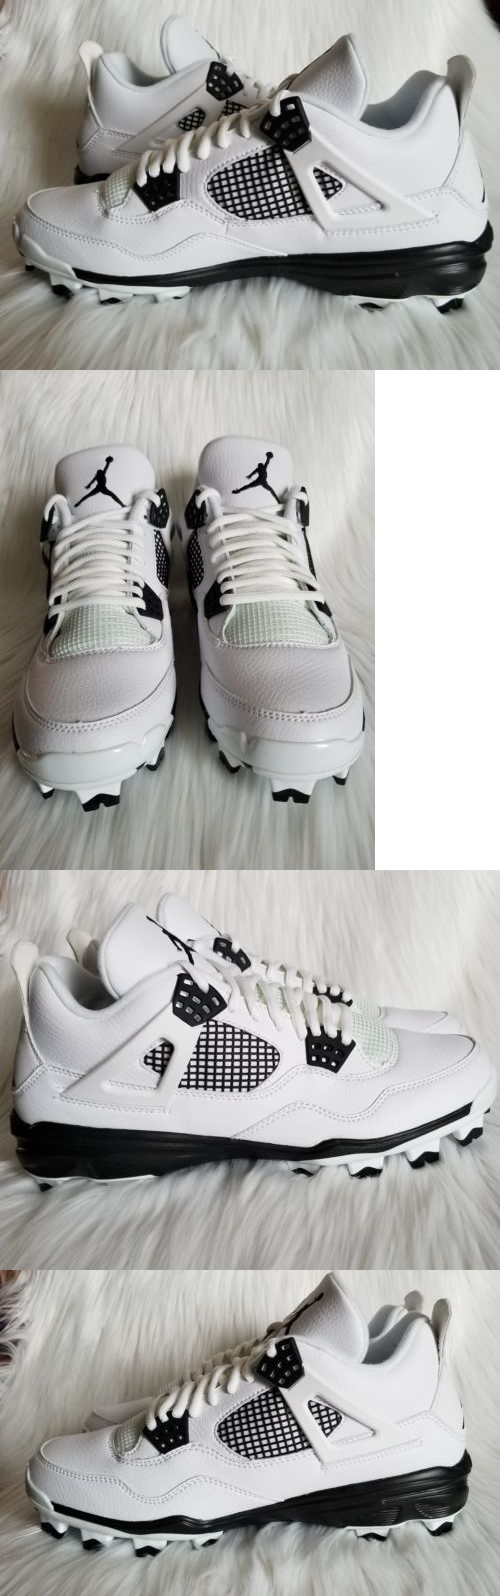 mens baseball on sale nike air jordan all white